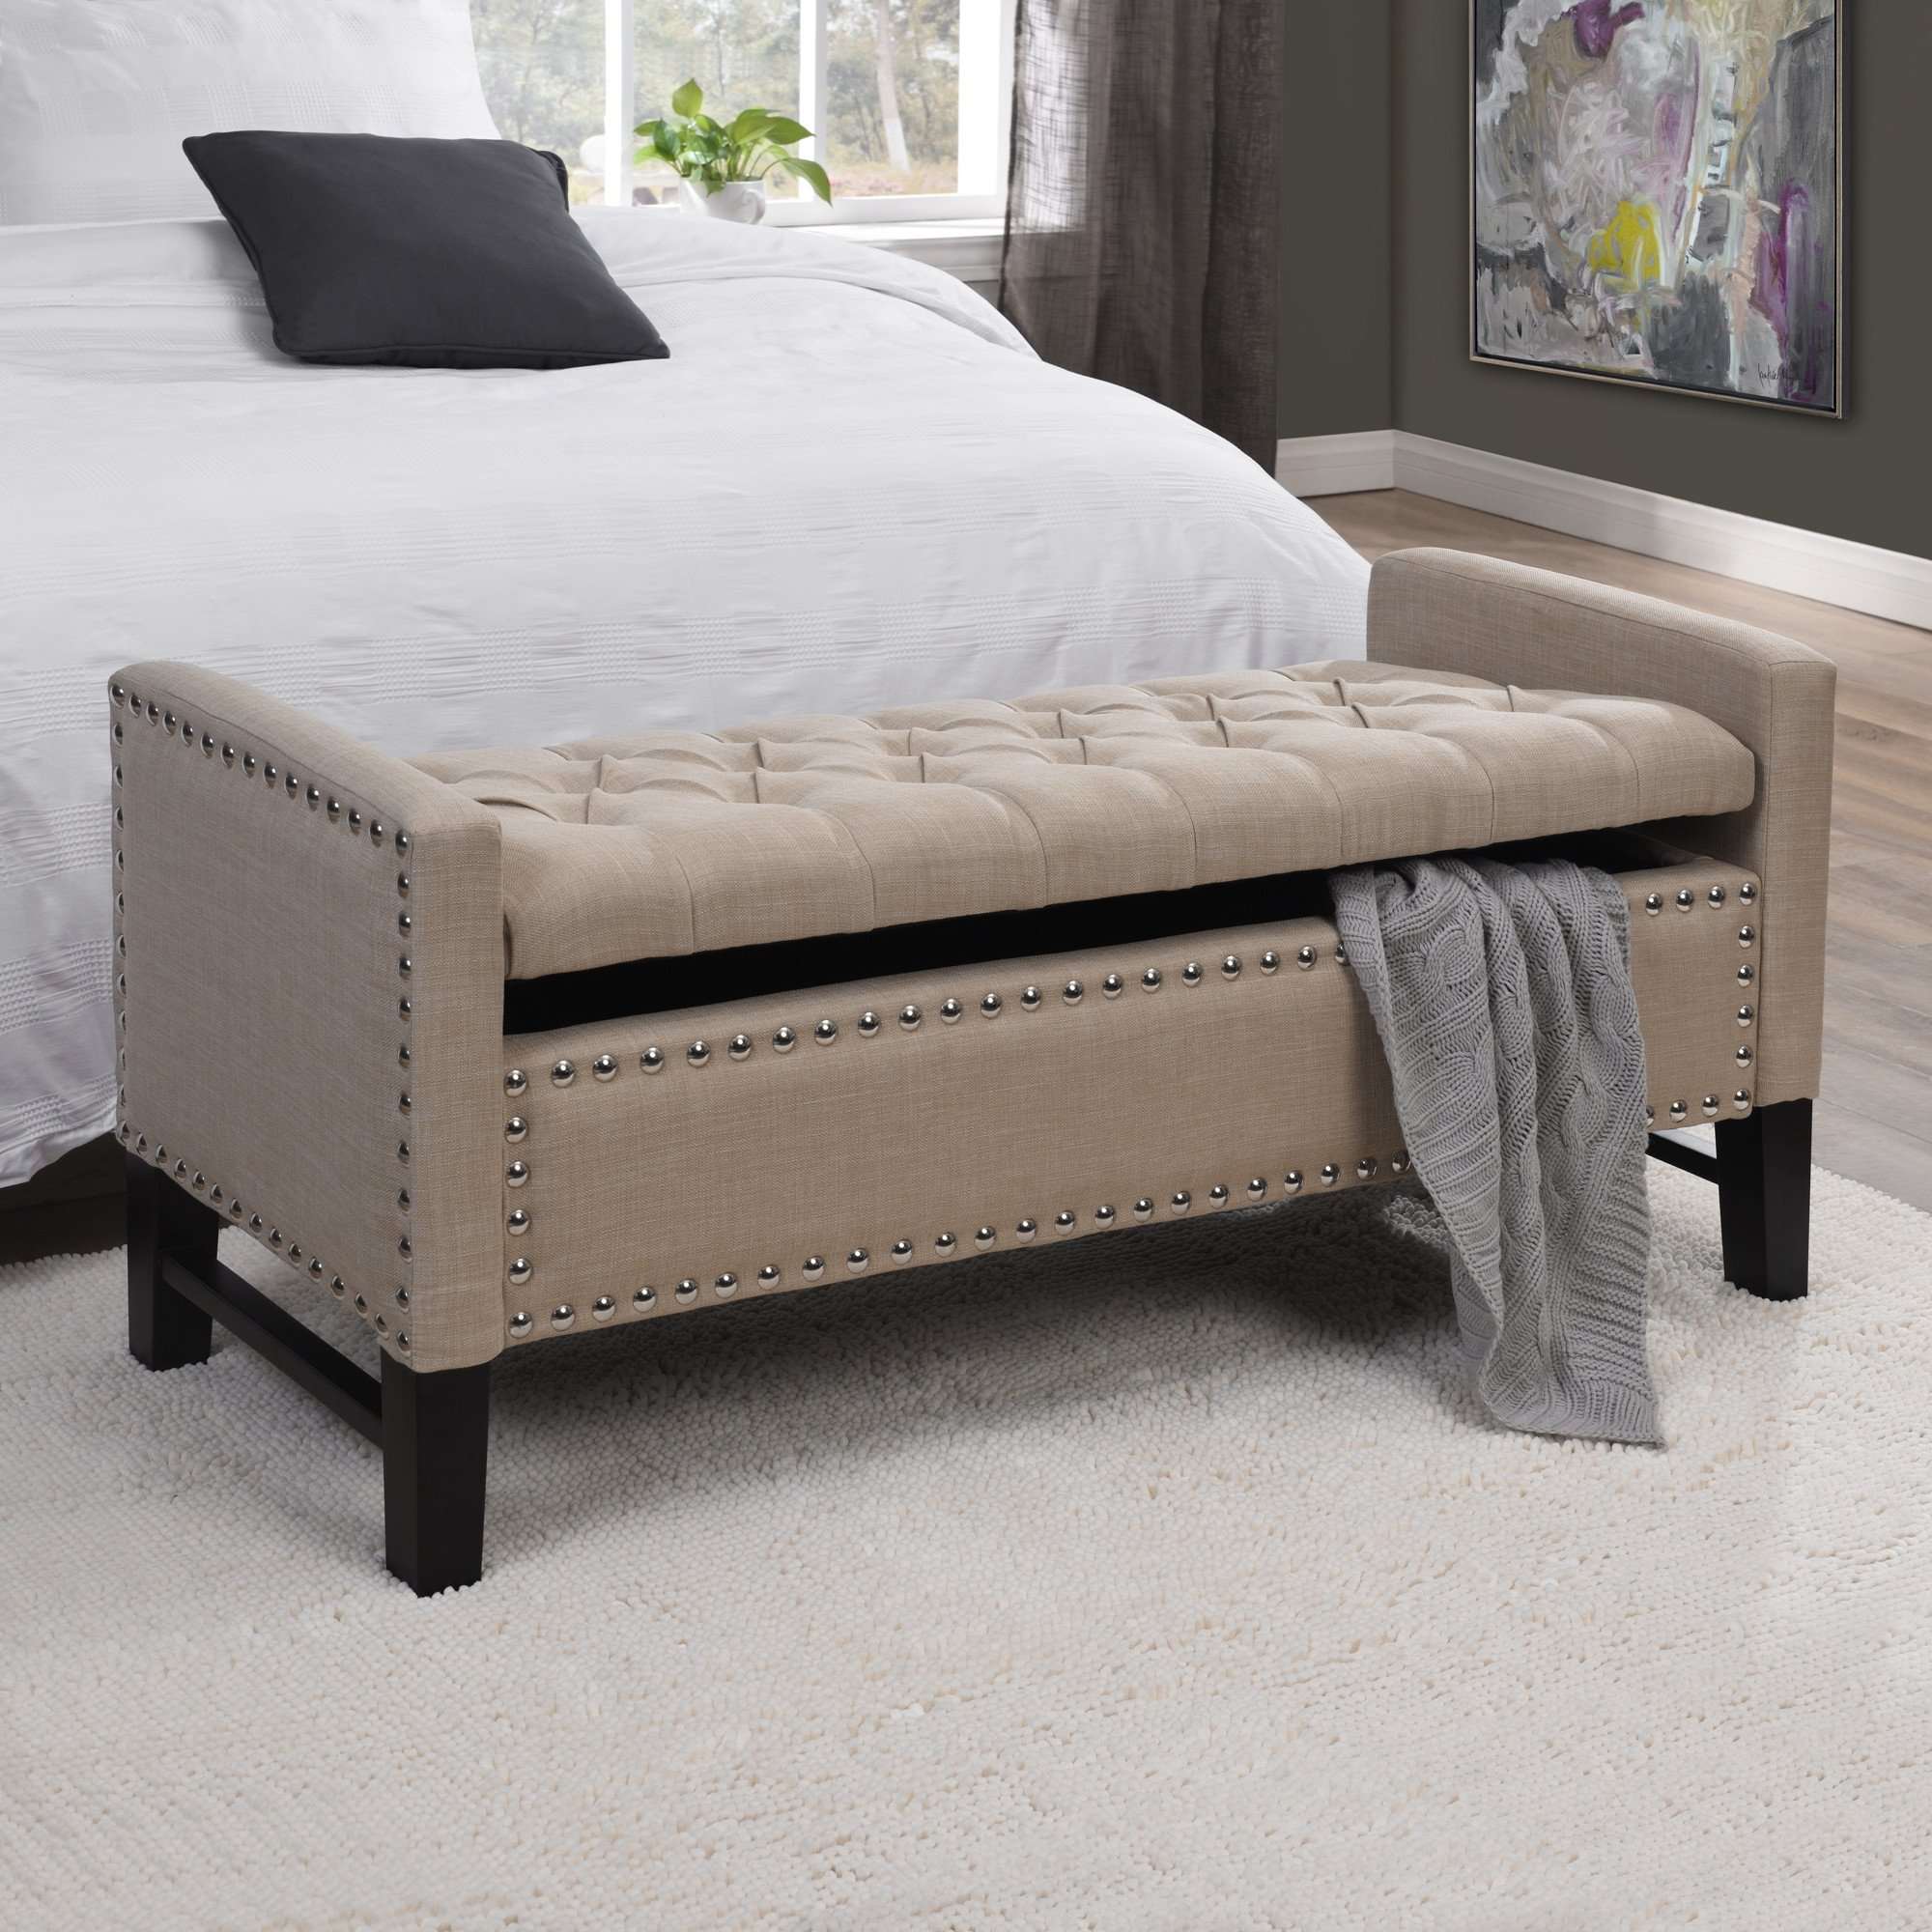 Inspired Home Columbus Linen Modern Contemporary Button Tufted with Silver Nail Head Trim Multi Position Storage Bench, Beige